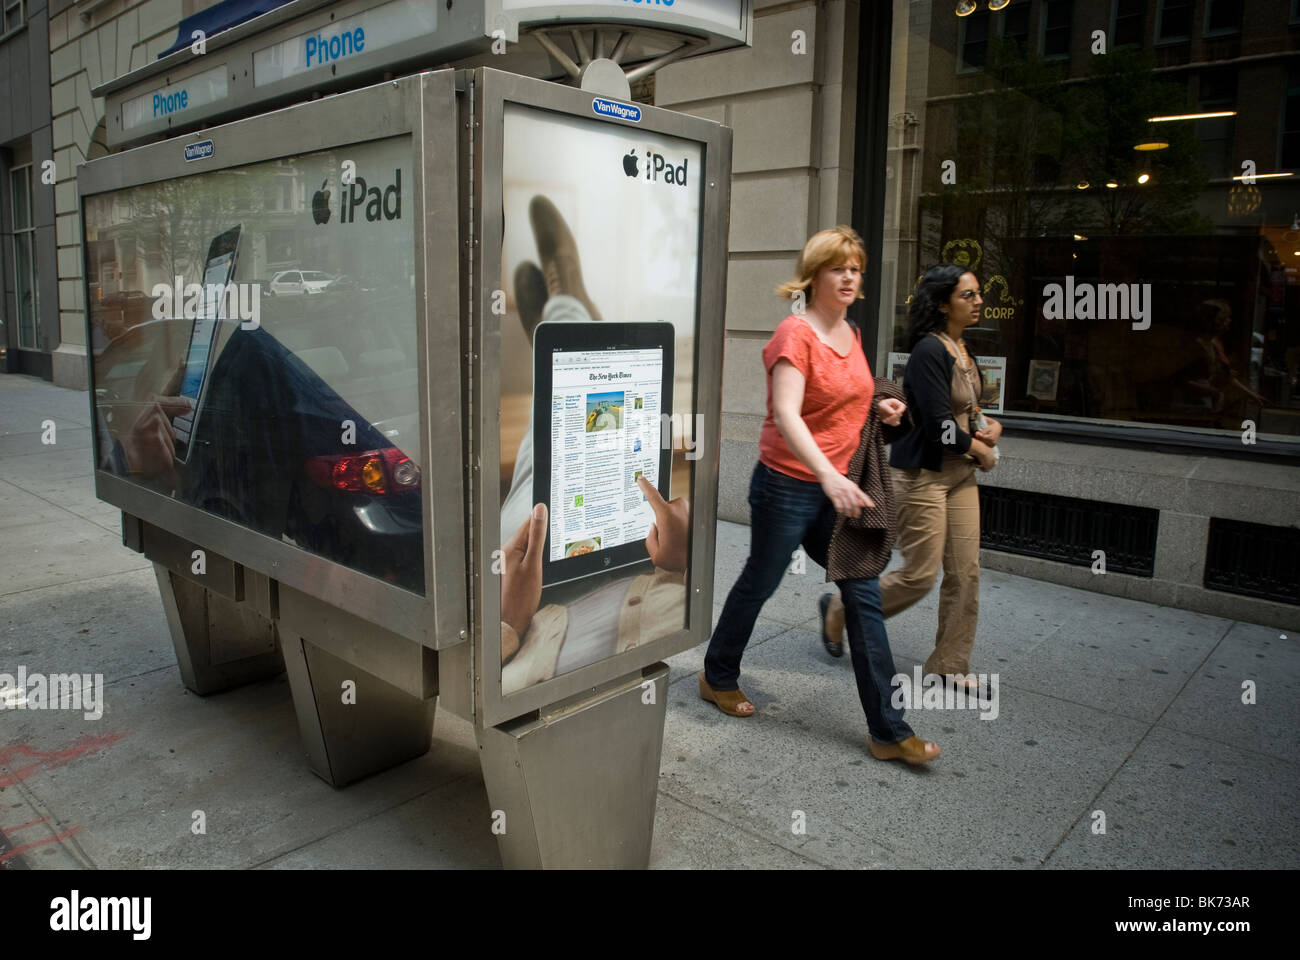 The New York Times is featured in advertising for the Apple Inc. iPad on a telephone kiosk in New York - Stock Image